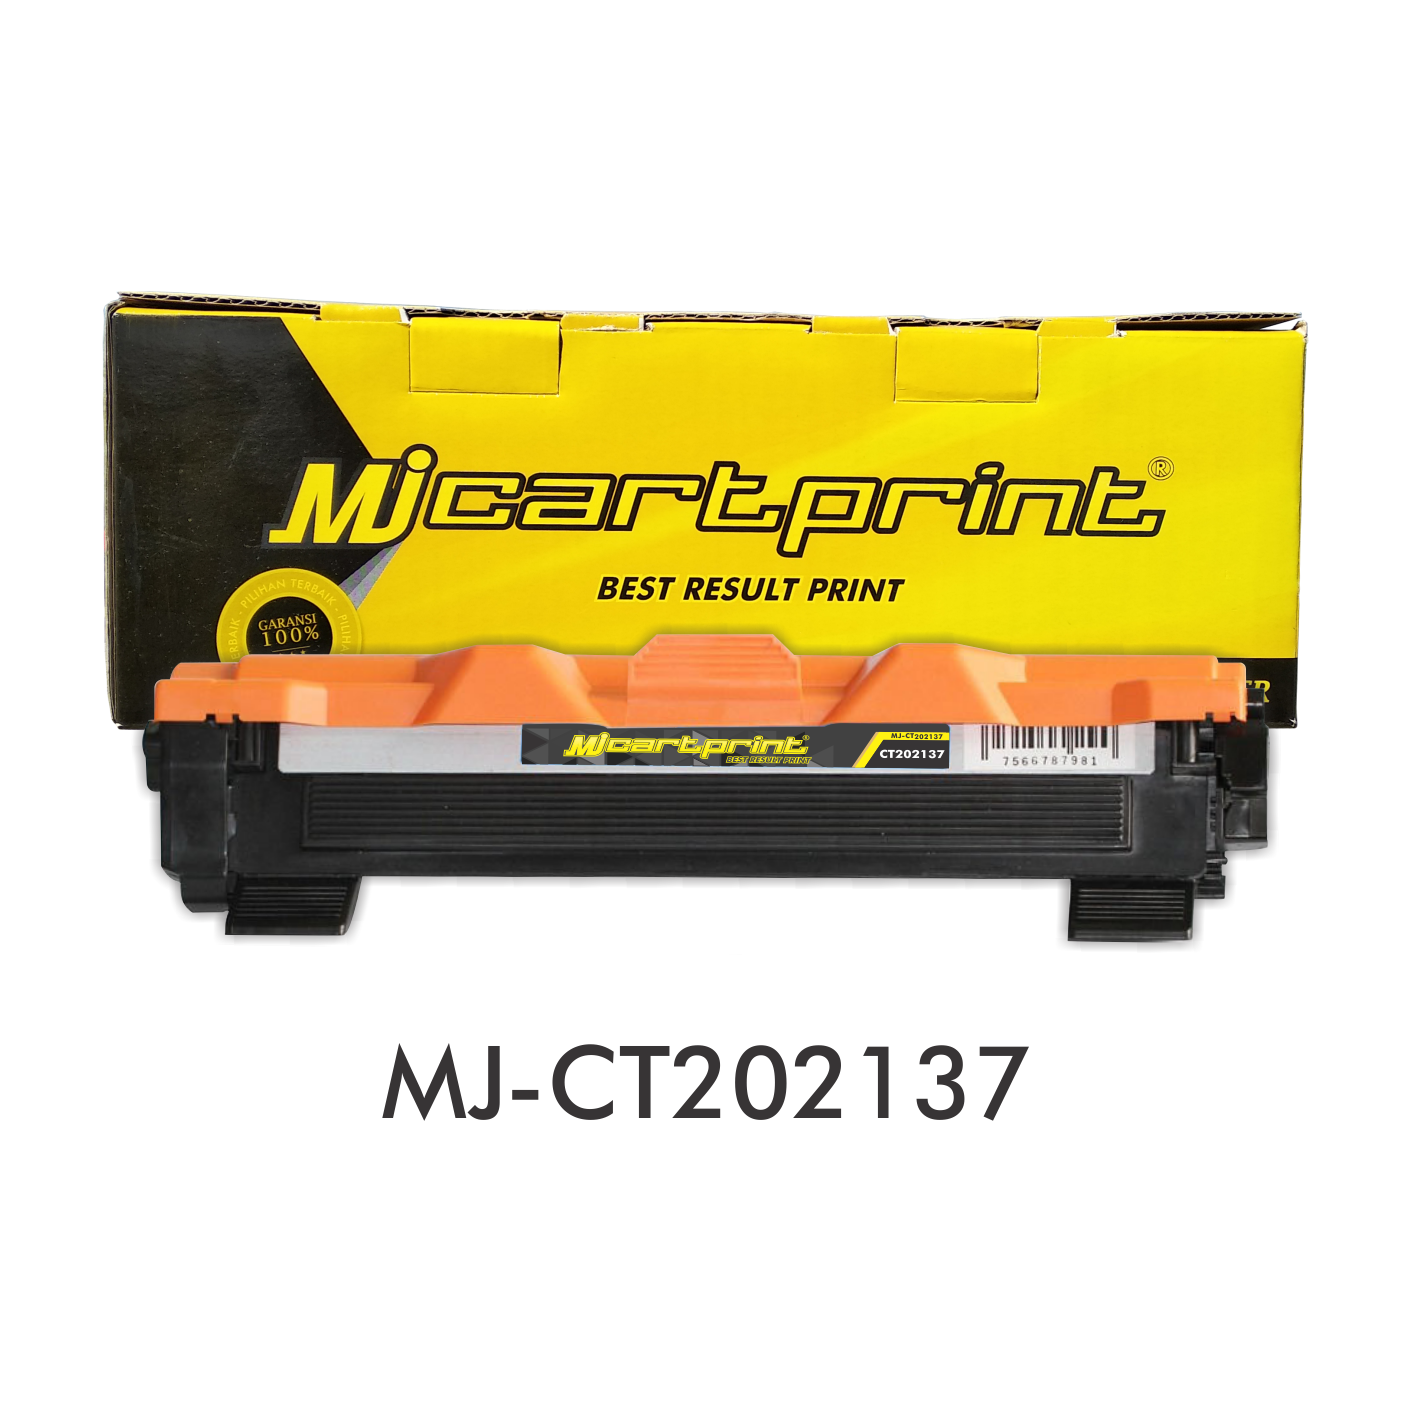 Toner Fuji Xerox P115wm115wm115fw Compatible Ct202137 Black Daftar Docuprint M115w Cartridge For Use P115 P115b P115w